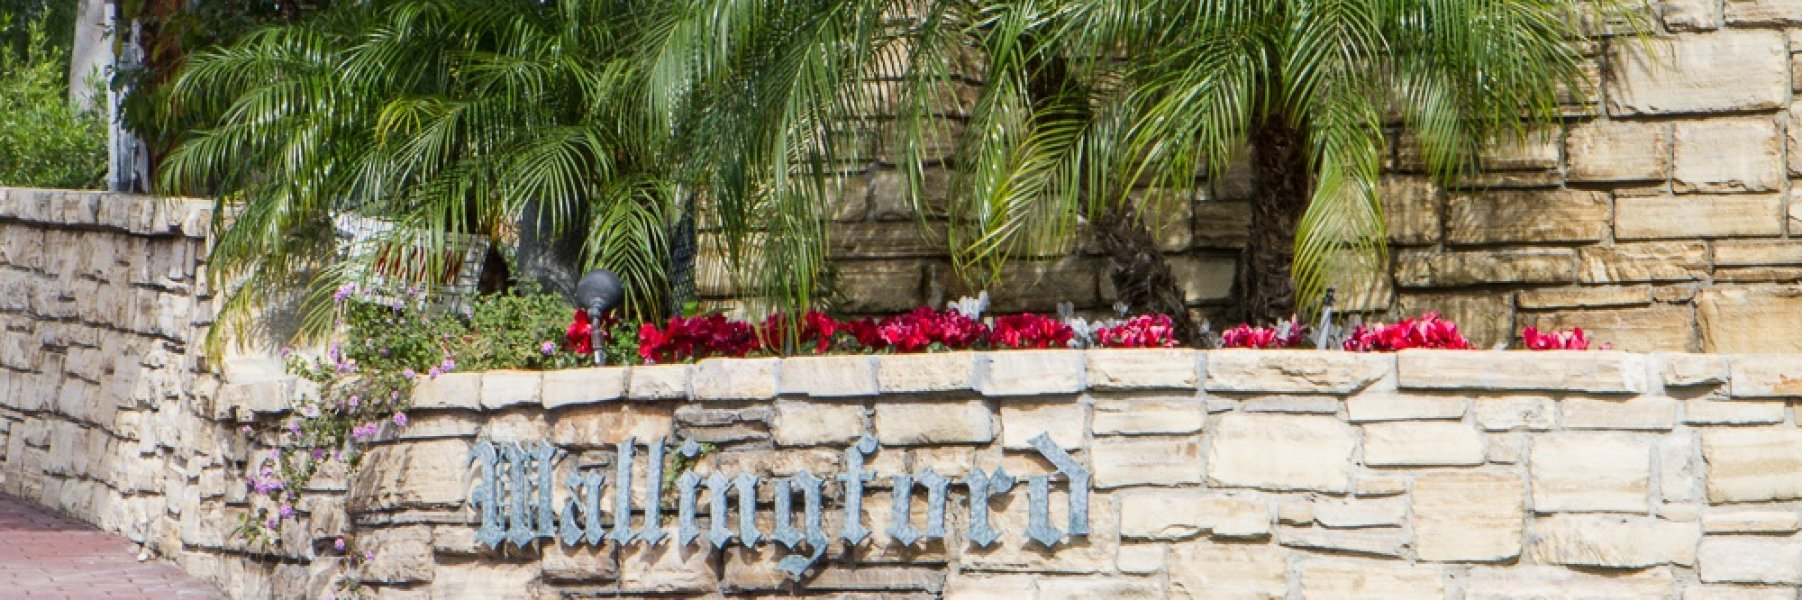 Wallingford Estates is a community of homes in Beverly Hills California